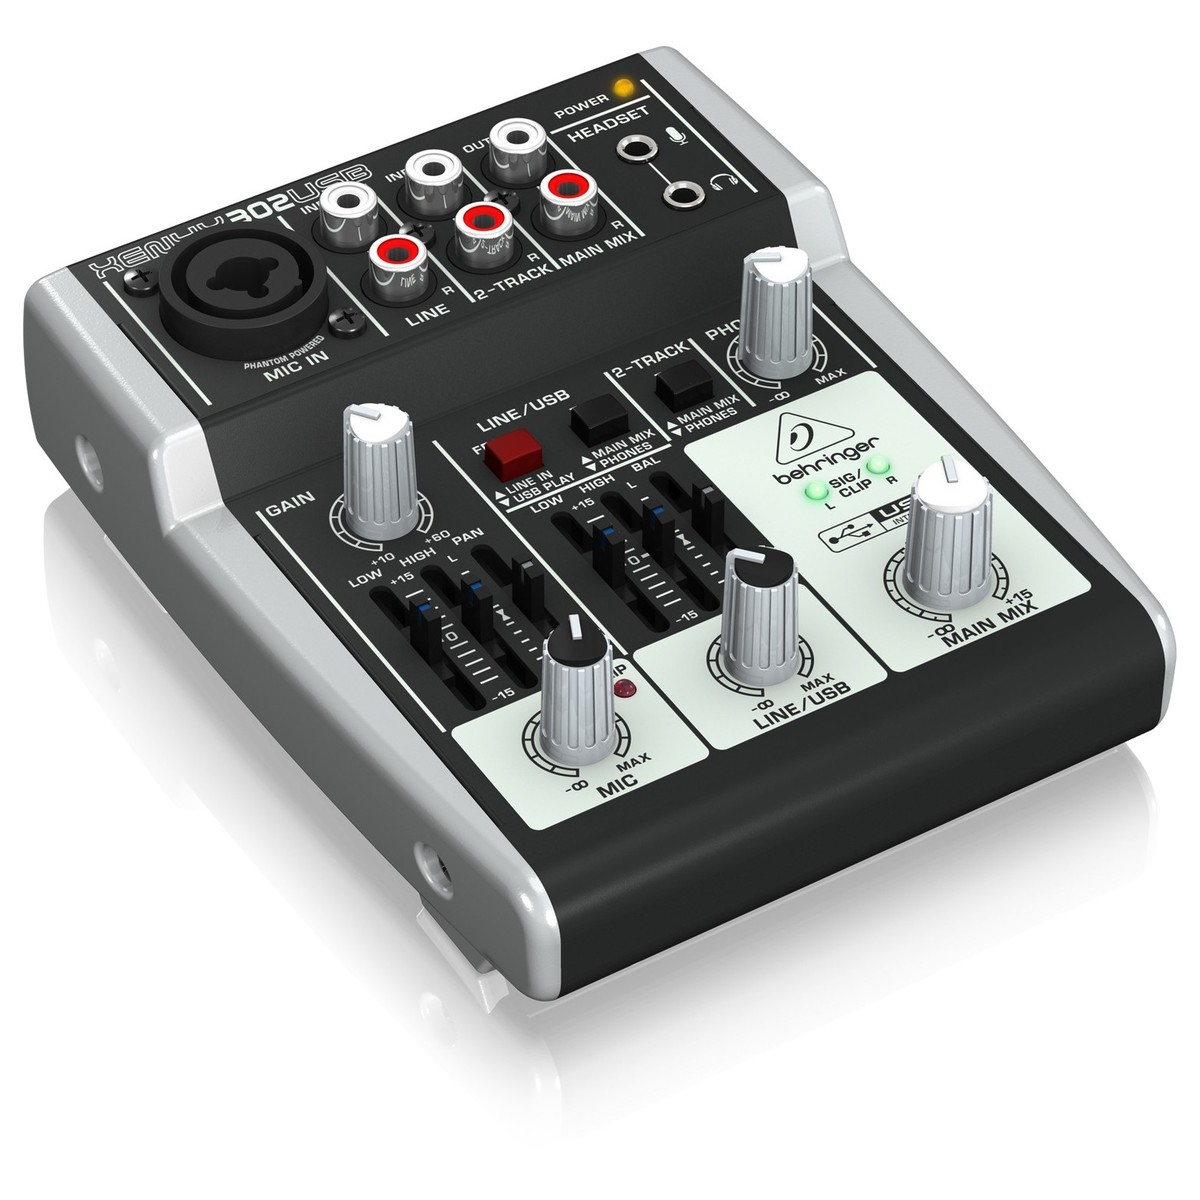 behringer xenyx 302usb usb analog mixer b stock at gear4music. Black Bedroom Furniture Sets. Home Design Ideas